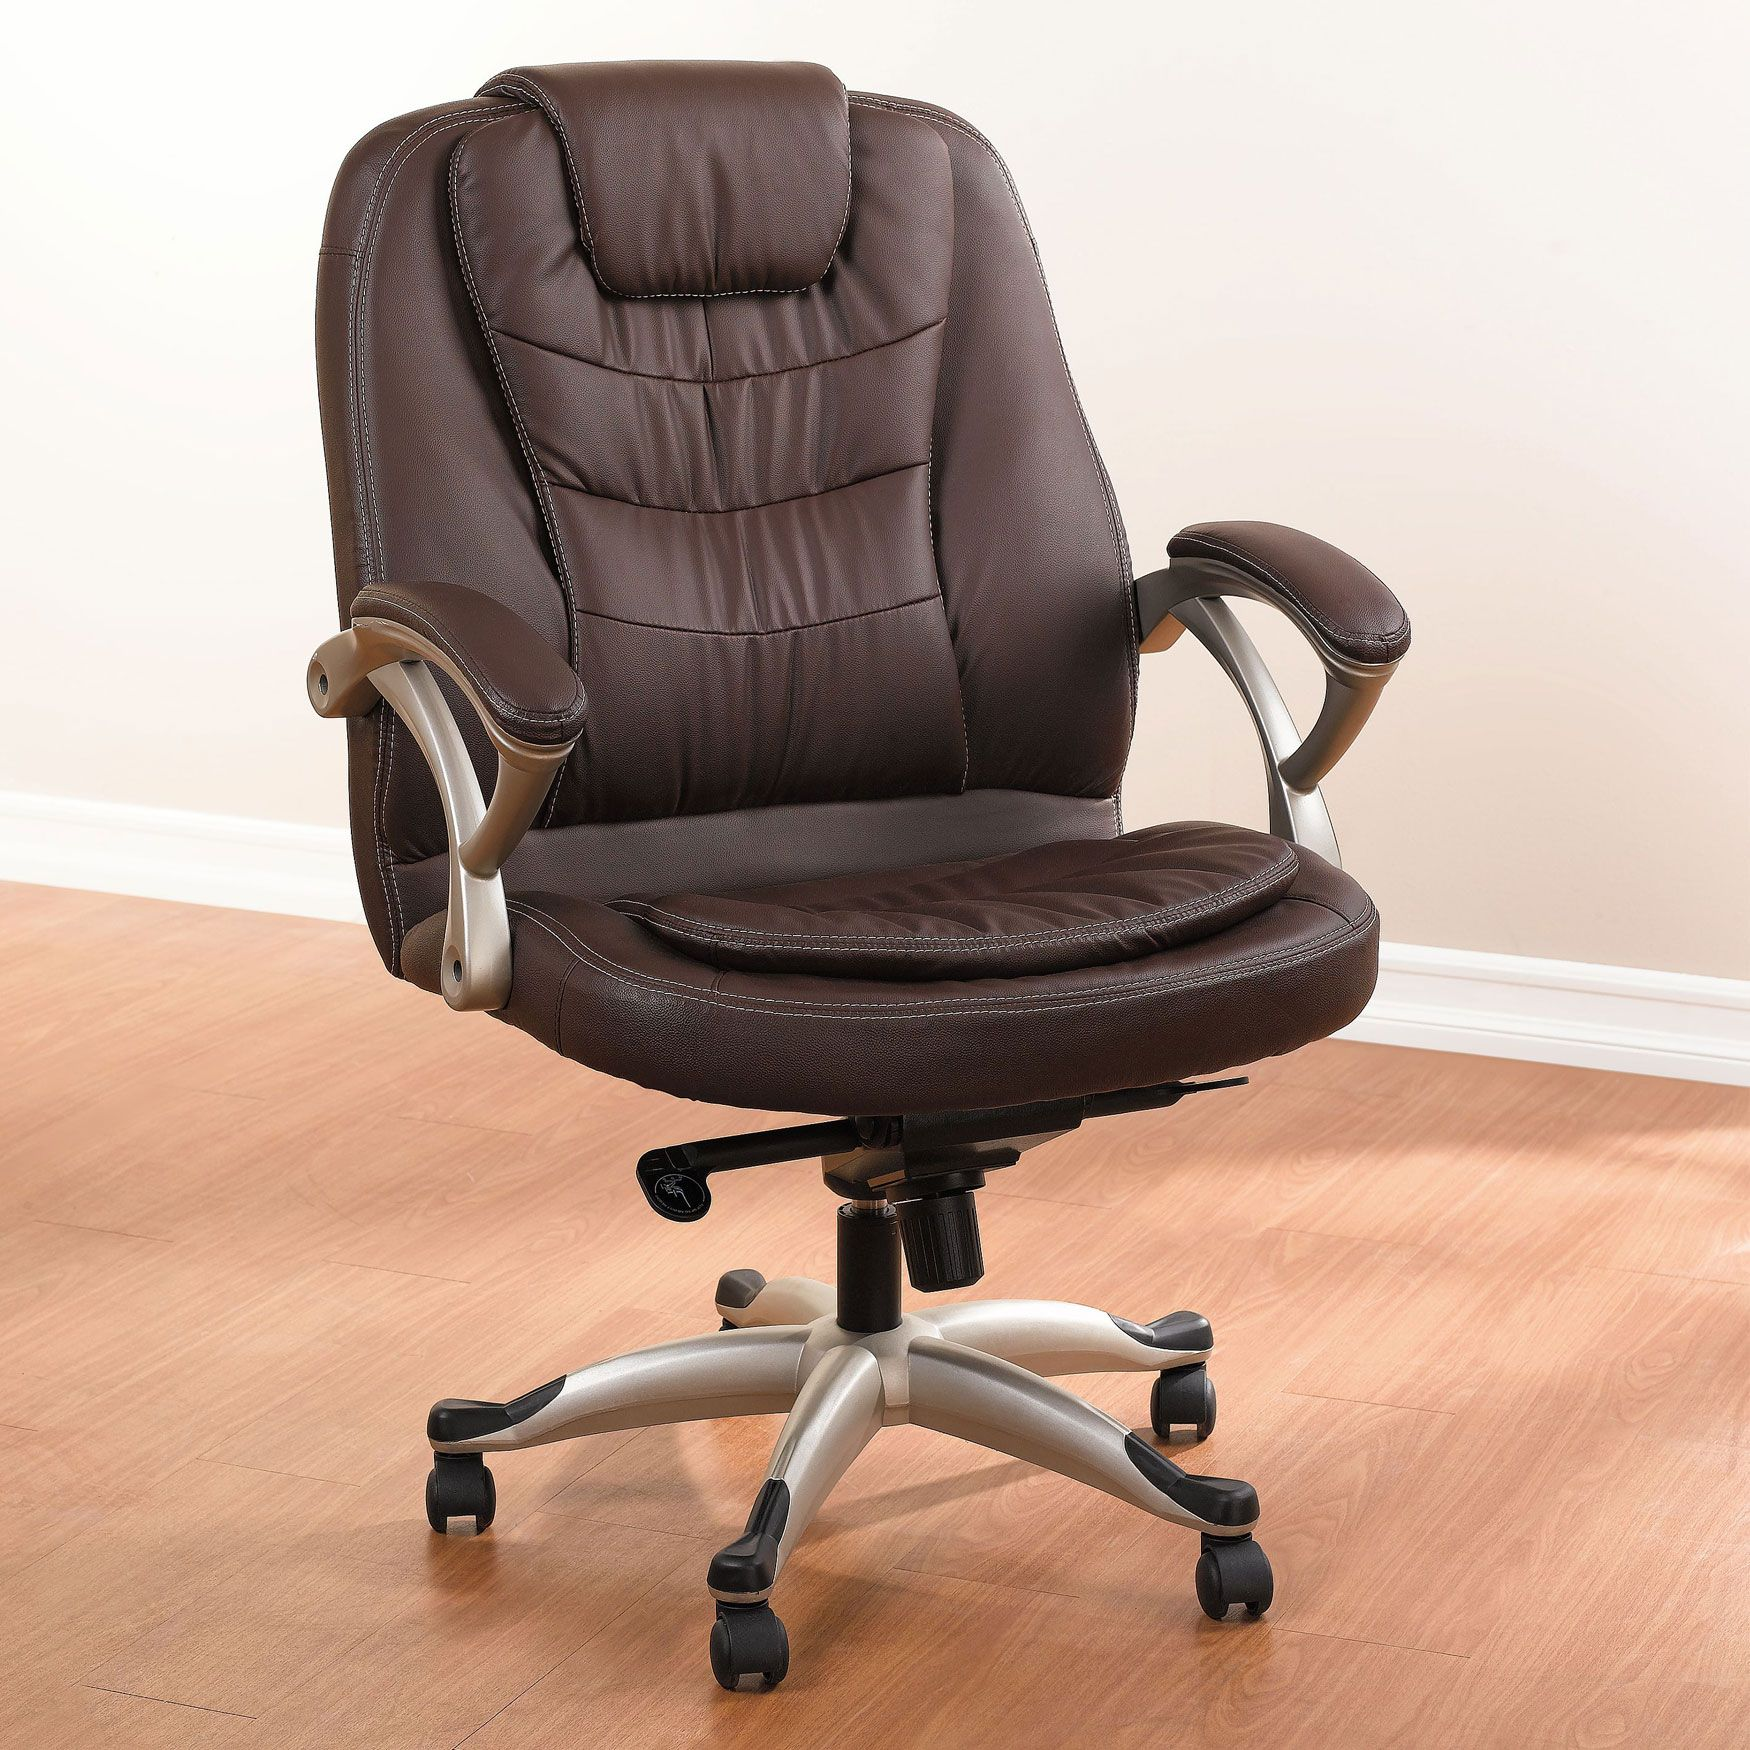 Our Extra Wide Deluxe plus size office chair has added support in all the right places